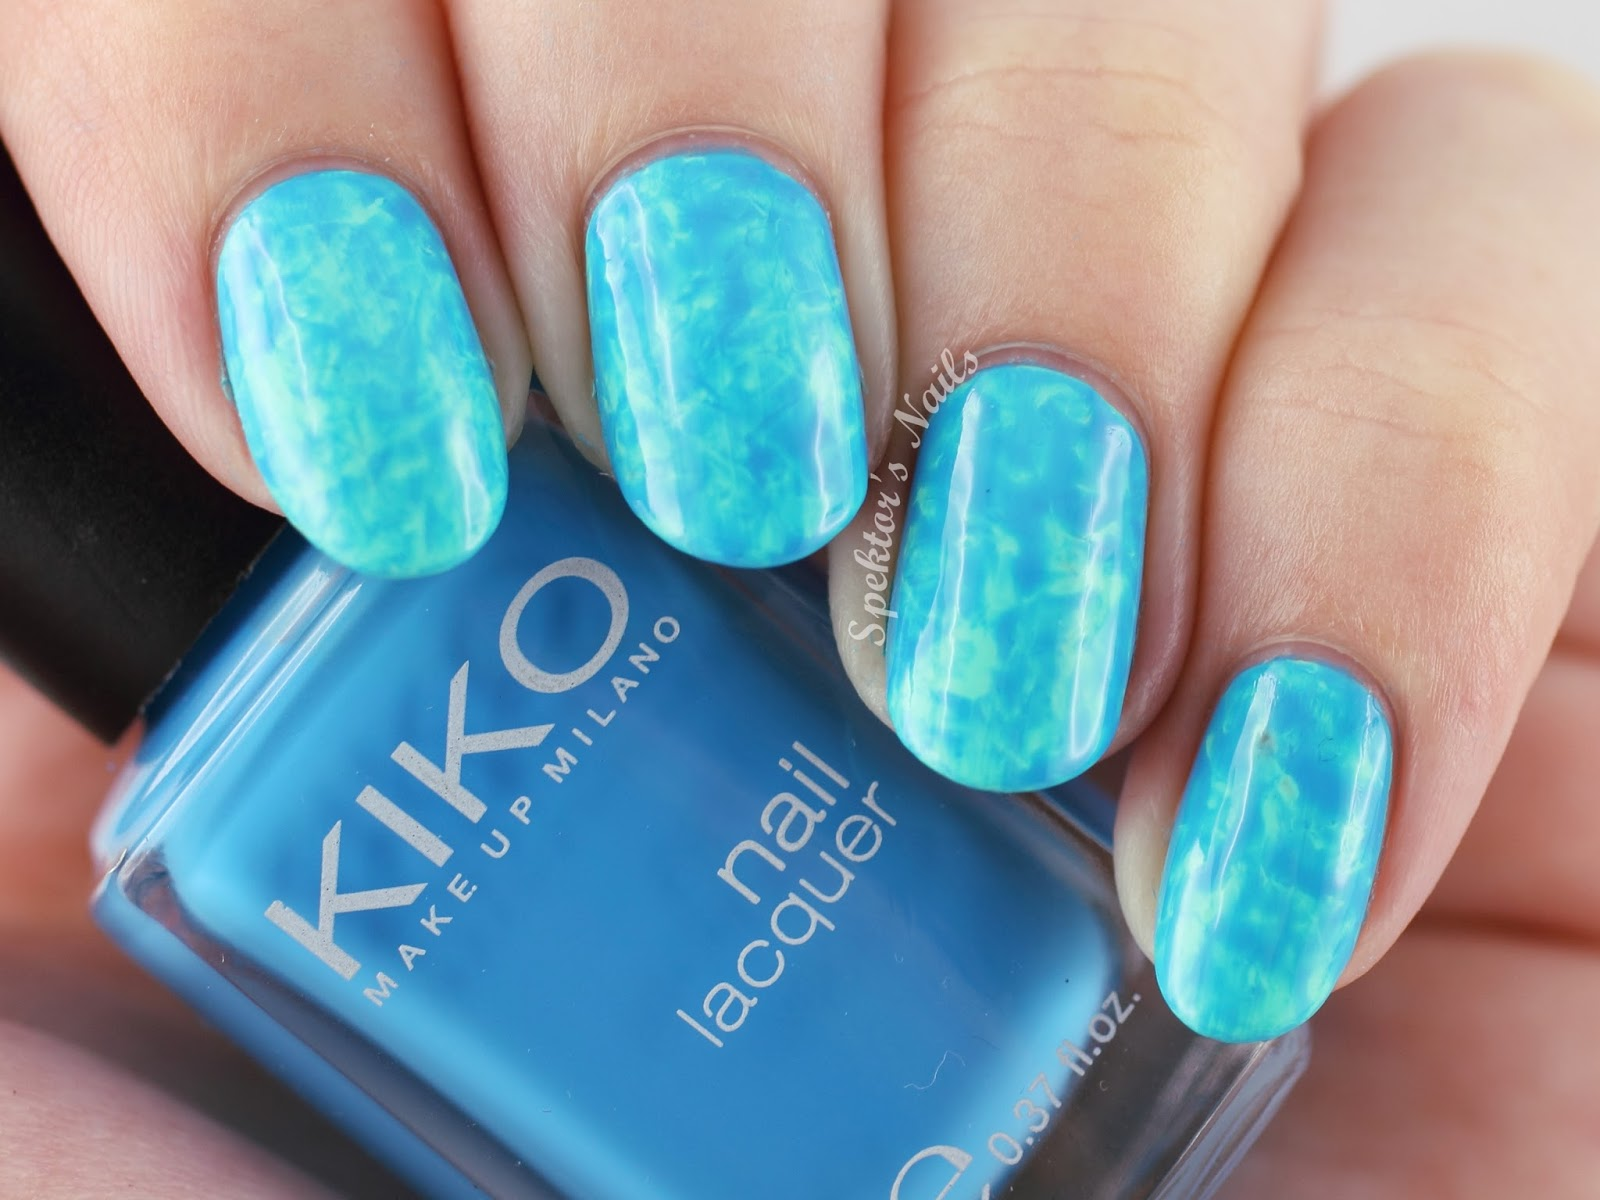 Swimming Pool Nails inspired by stephstonenails / Kiko - 389 Mint Milk & 295 Cerulean Blue